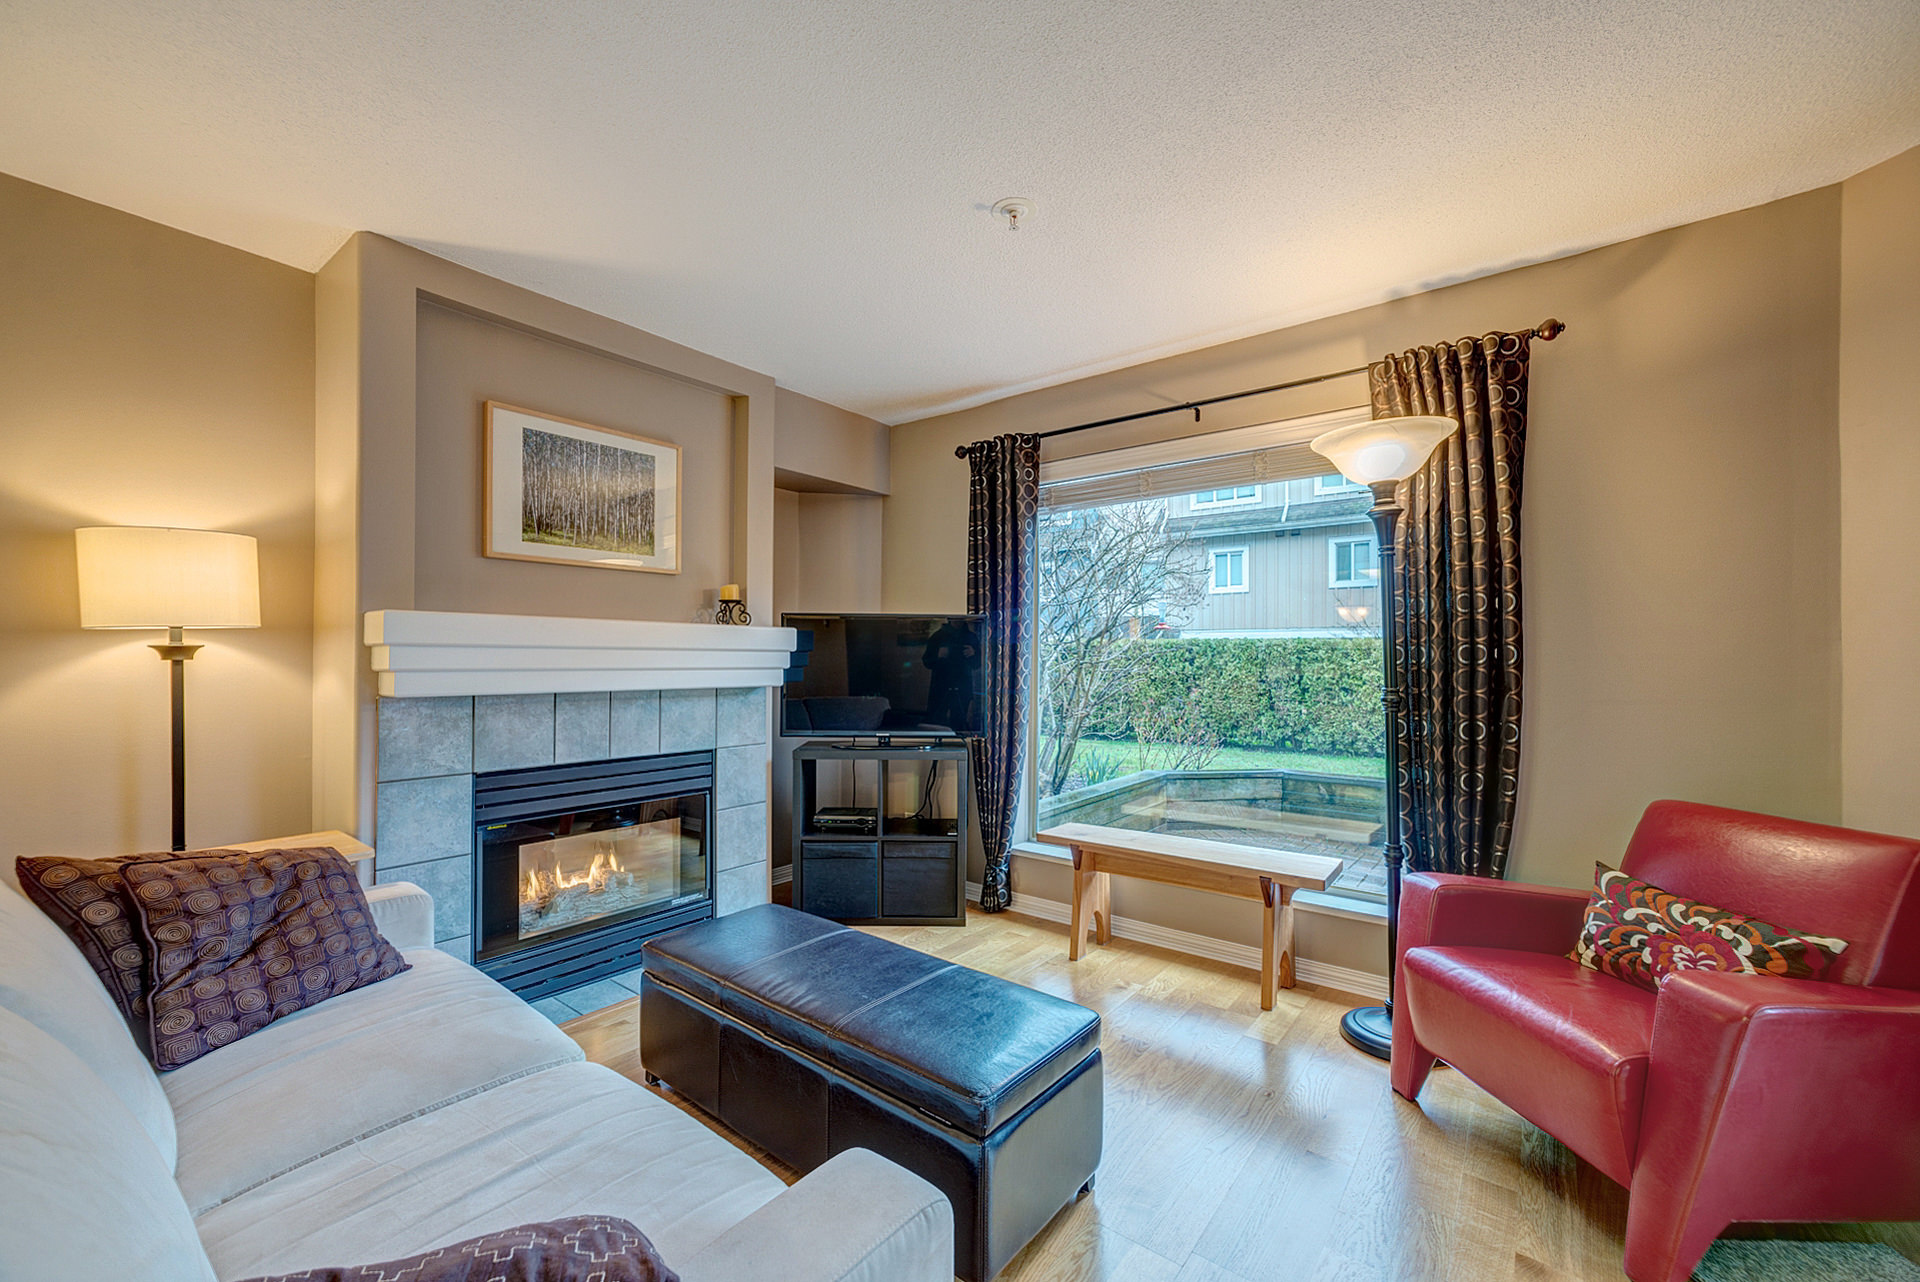 31207_11 at 105 - 1650 Grant Avenue, Glenwood PQ, Port Coquitlam